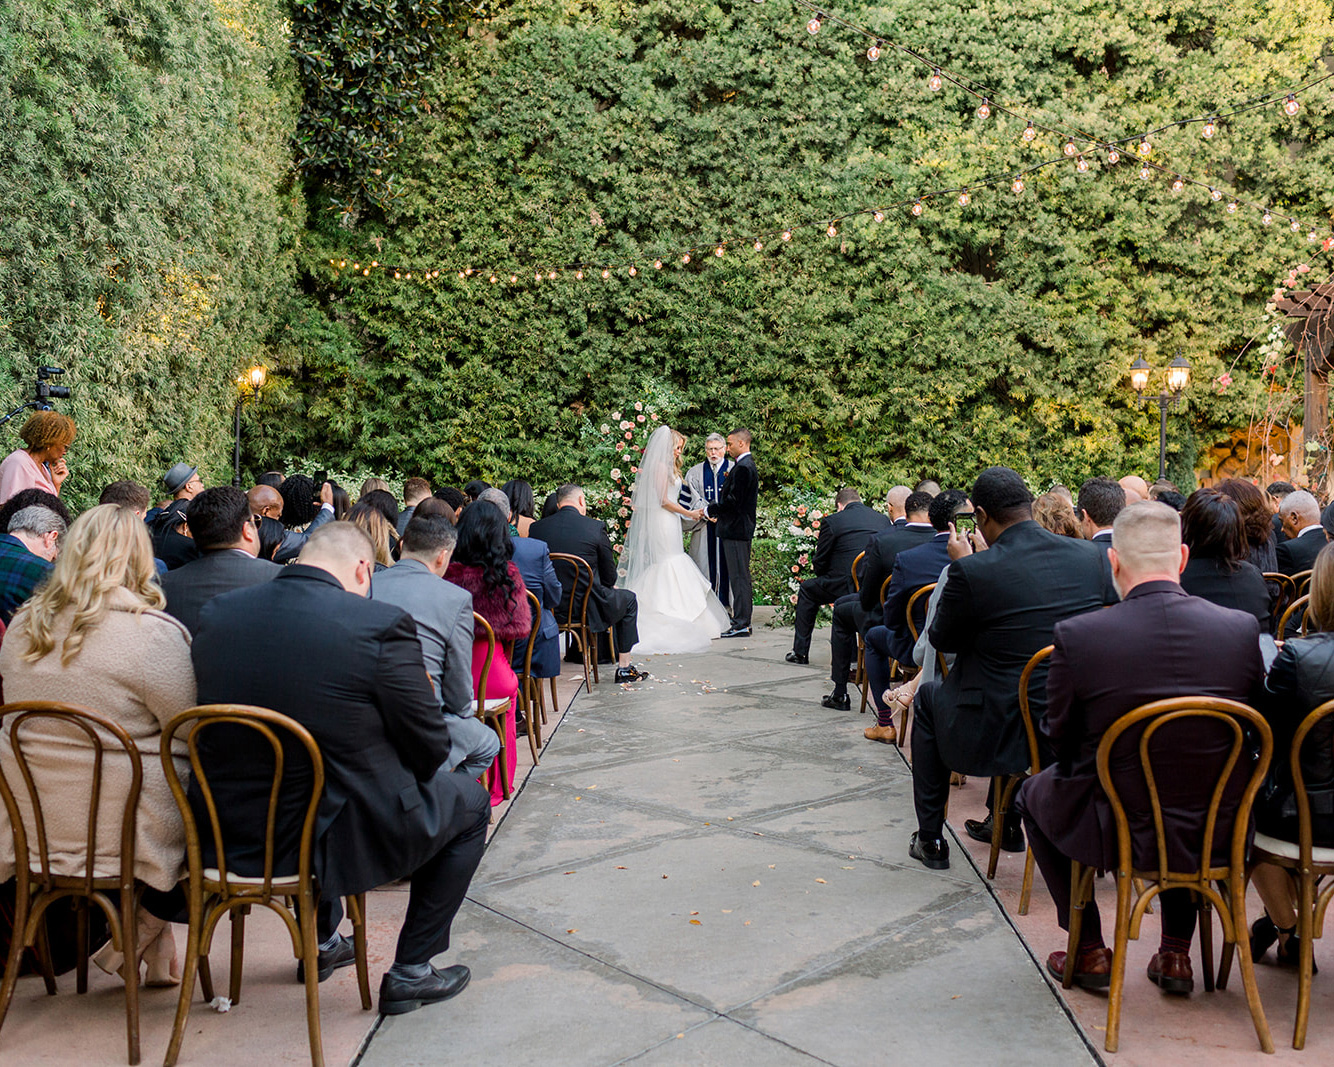 wedding ceremony outdoors with guests in wooden chairs